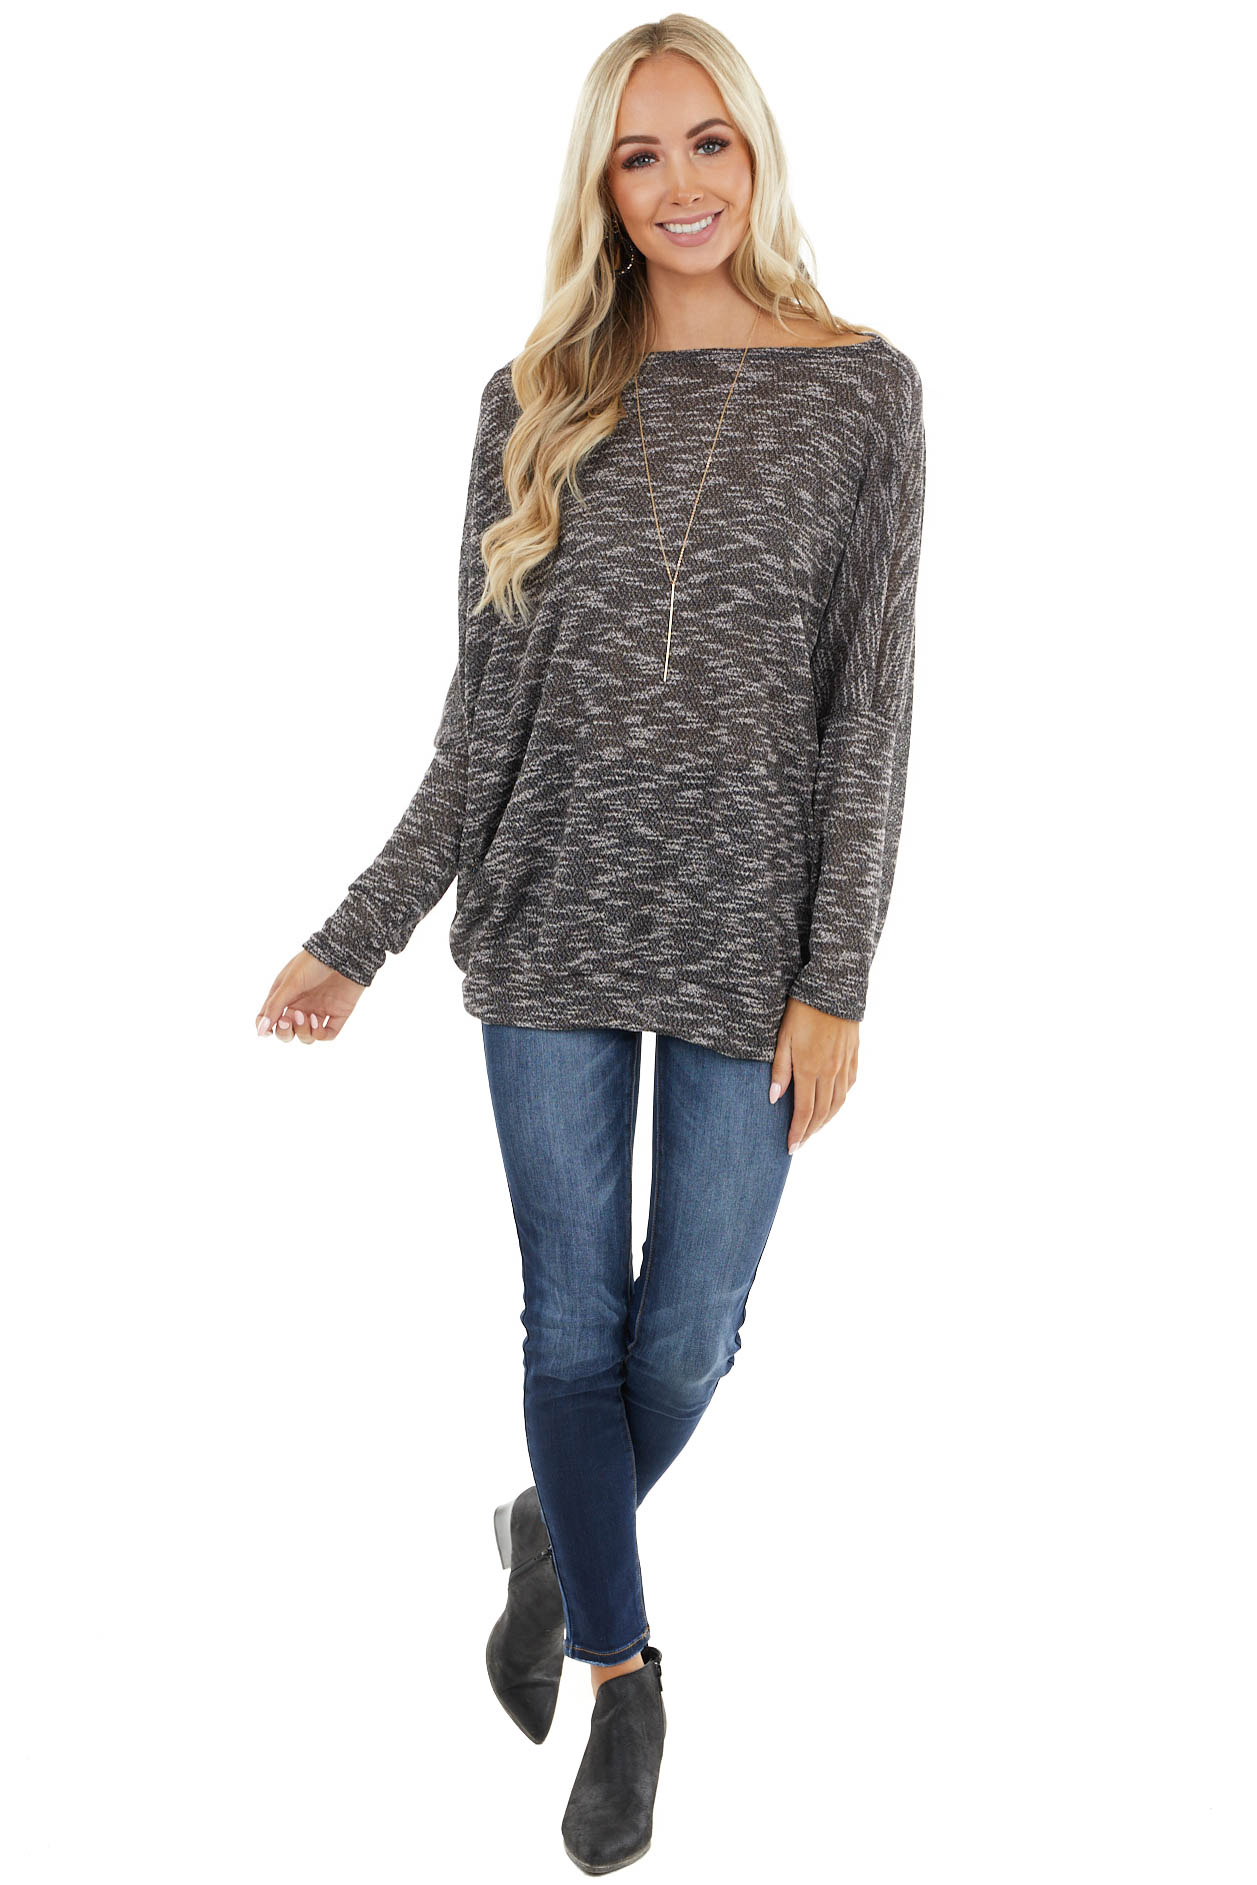 Black Two Tone Off the Shoulder Long Sleeve Knit Top